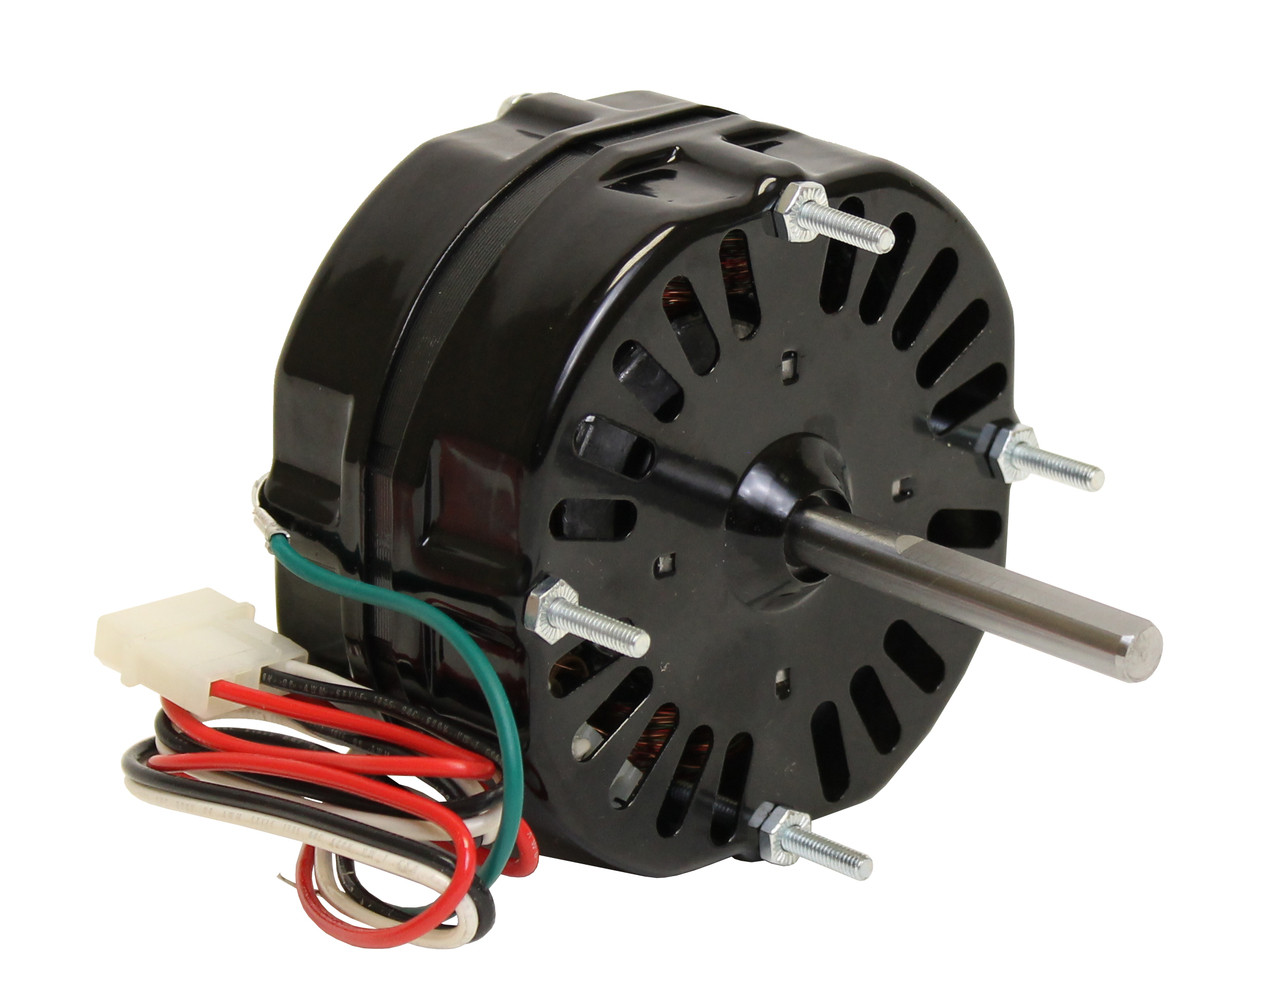 615053A__31268.1504204697.1280.1280?c=2 dayton, broan and lomanco attic fan motors electric motor warehouse  at nearapp.co